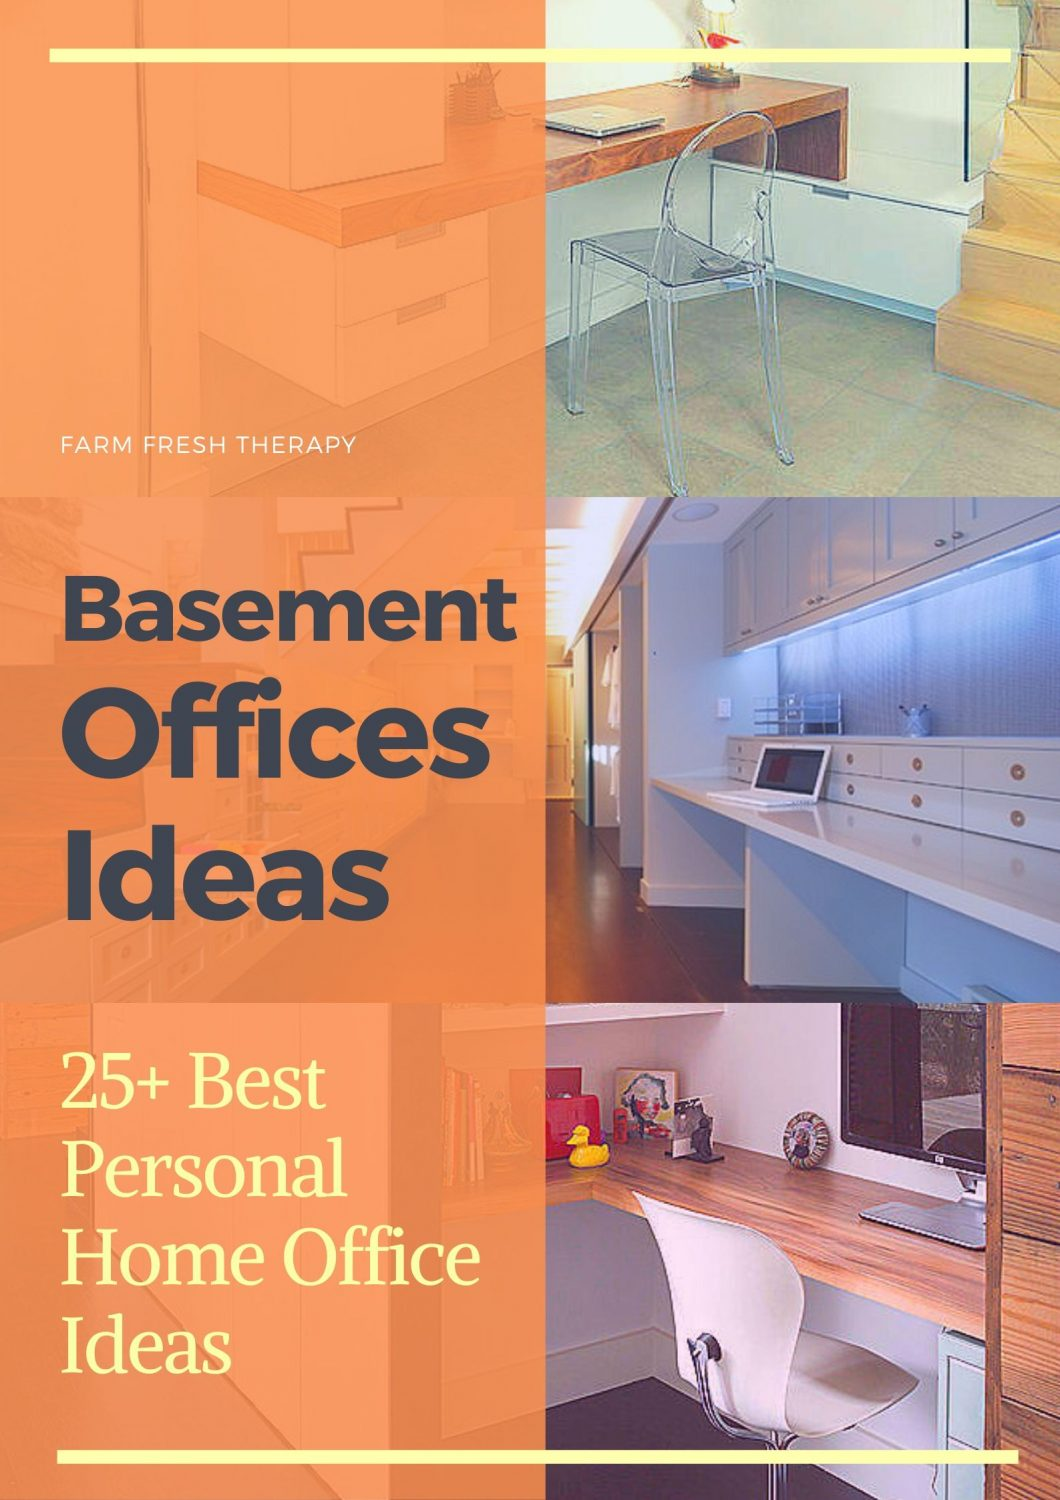 Basement Offices Ideas